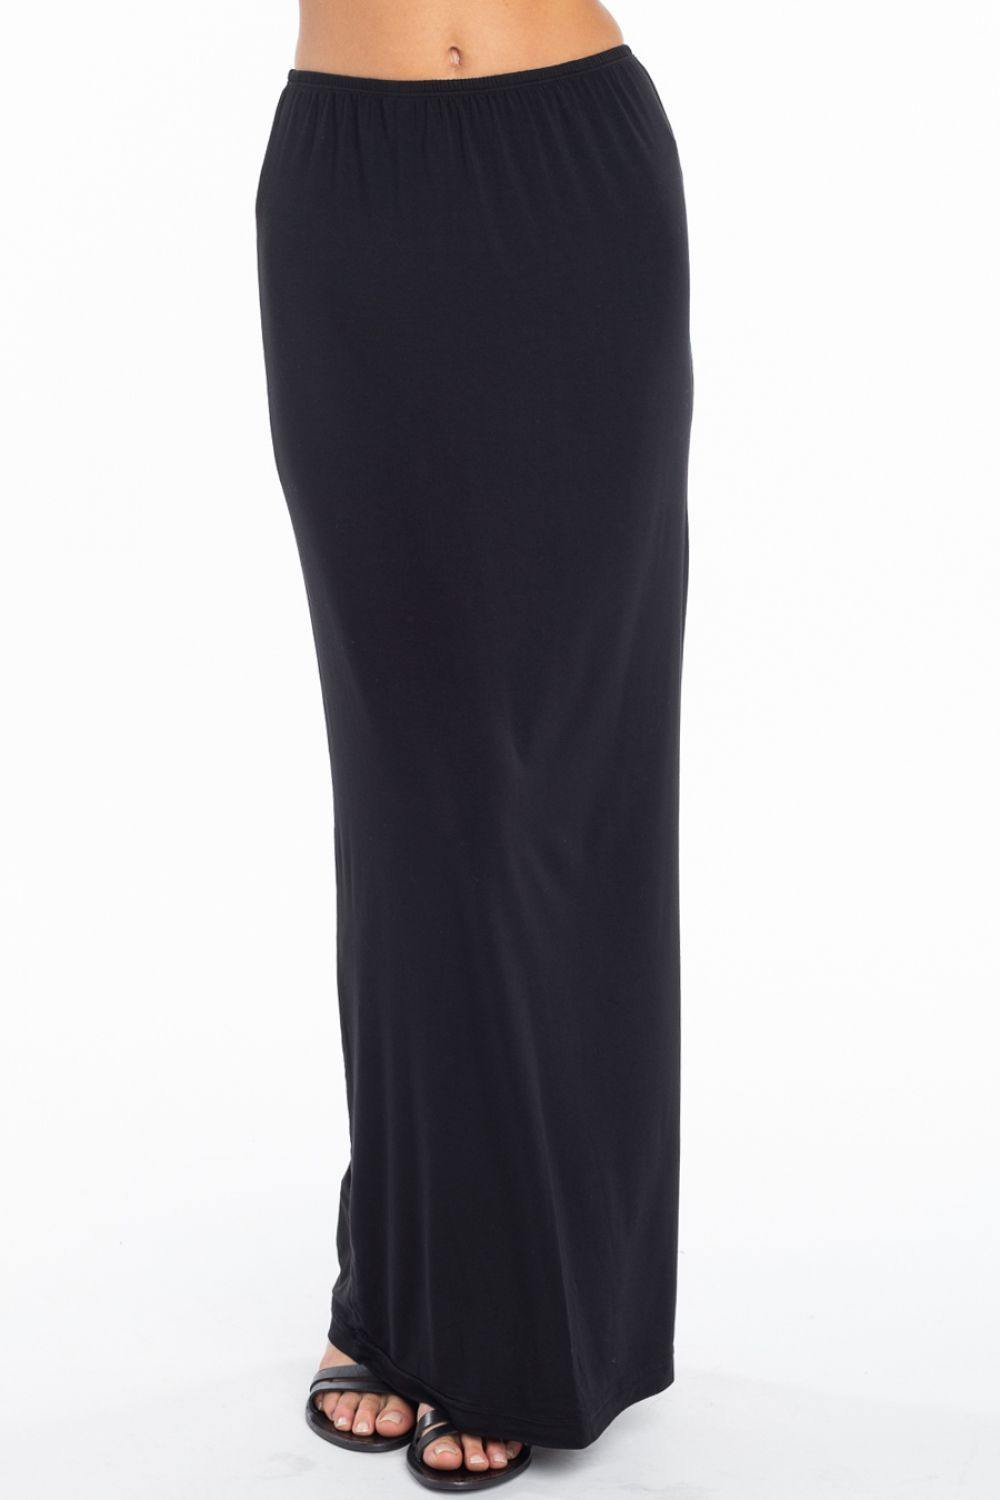 Hardtail Modal Maxi Skirt SIR-12